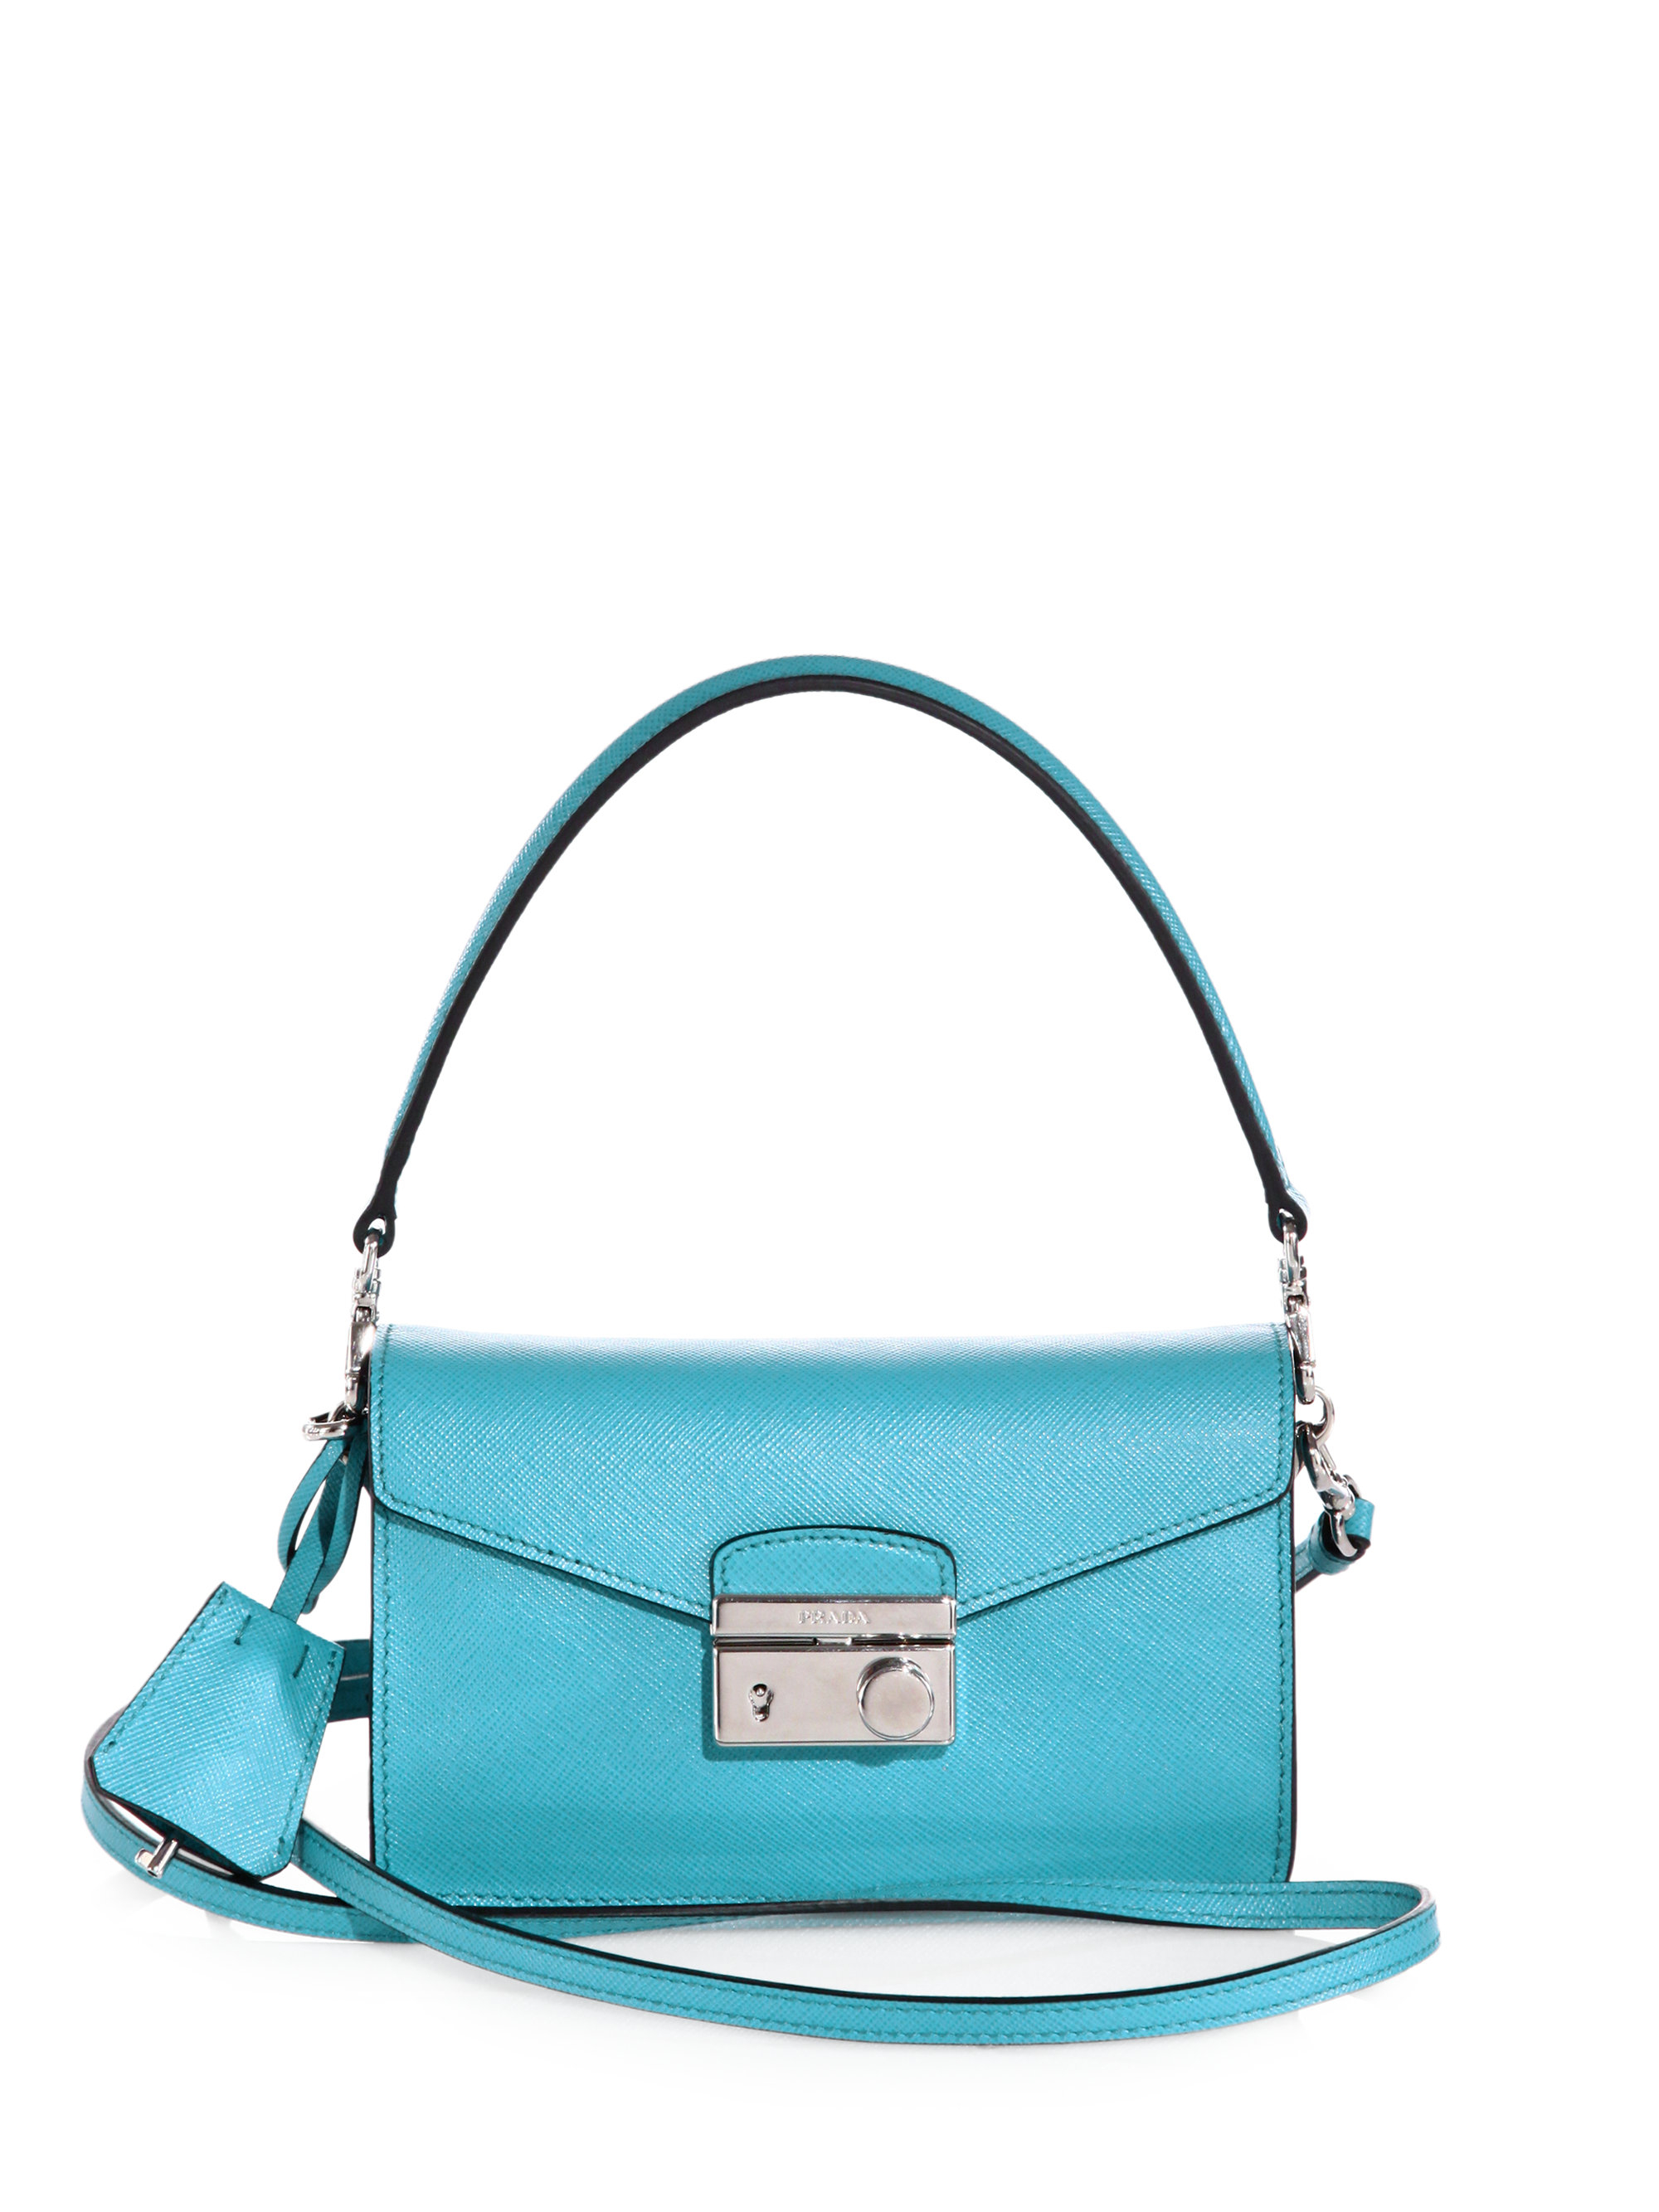 Prada Saffiano Leather Mini Sound Crossbody Bag in Blue | Lyst